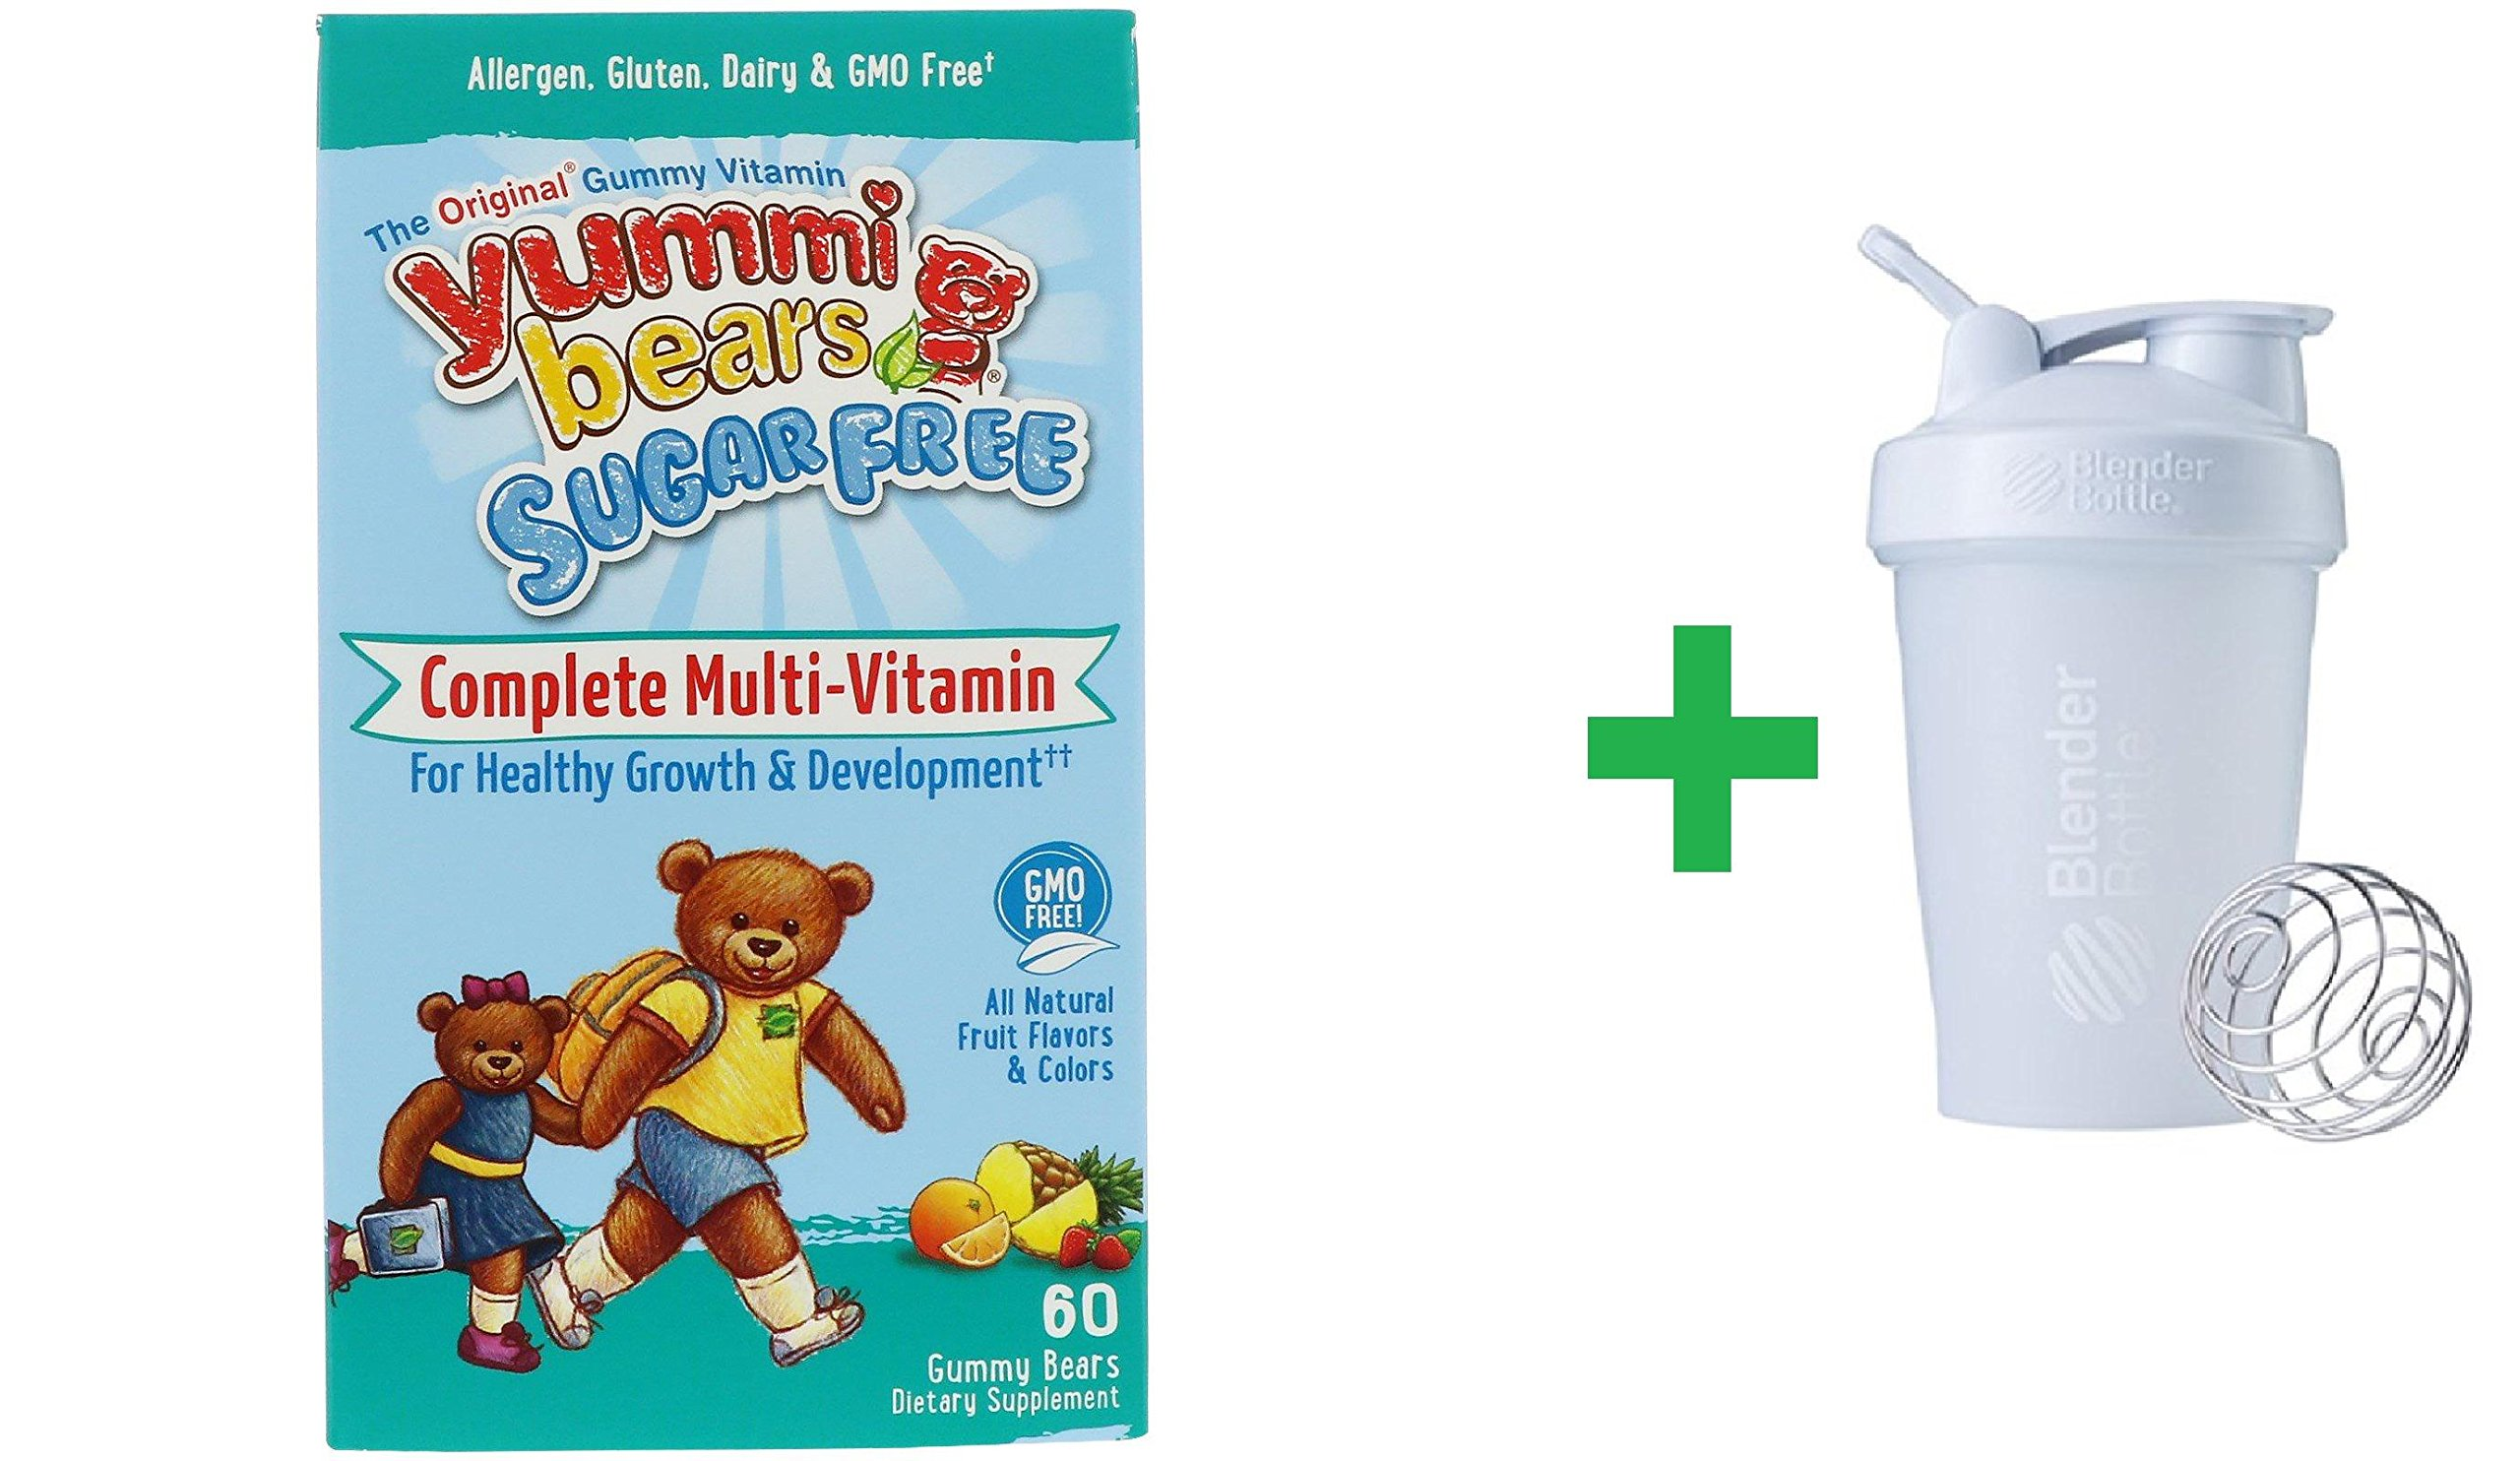 Hero Nutritional Products, Yummi Bears, Complete Multi-Vitamin, Sugar Free, All Natural Fruit Flavors, 60 Gummy Bears + Sundesa, BlenderBottle, Classic With Loop, White, 20 oz